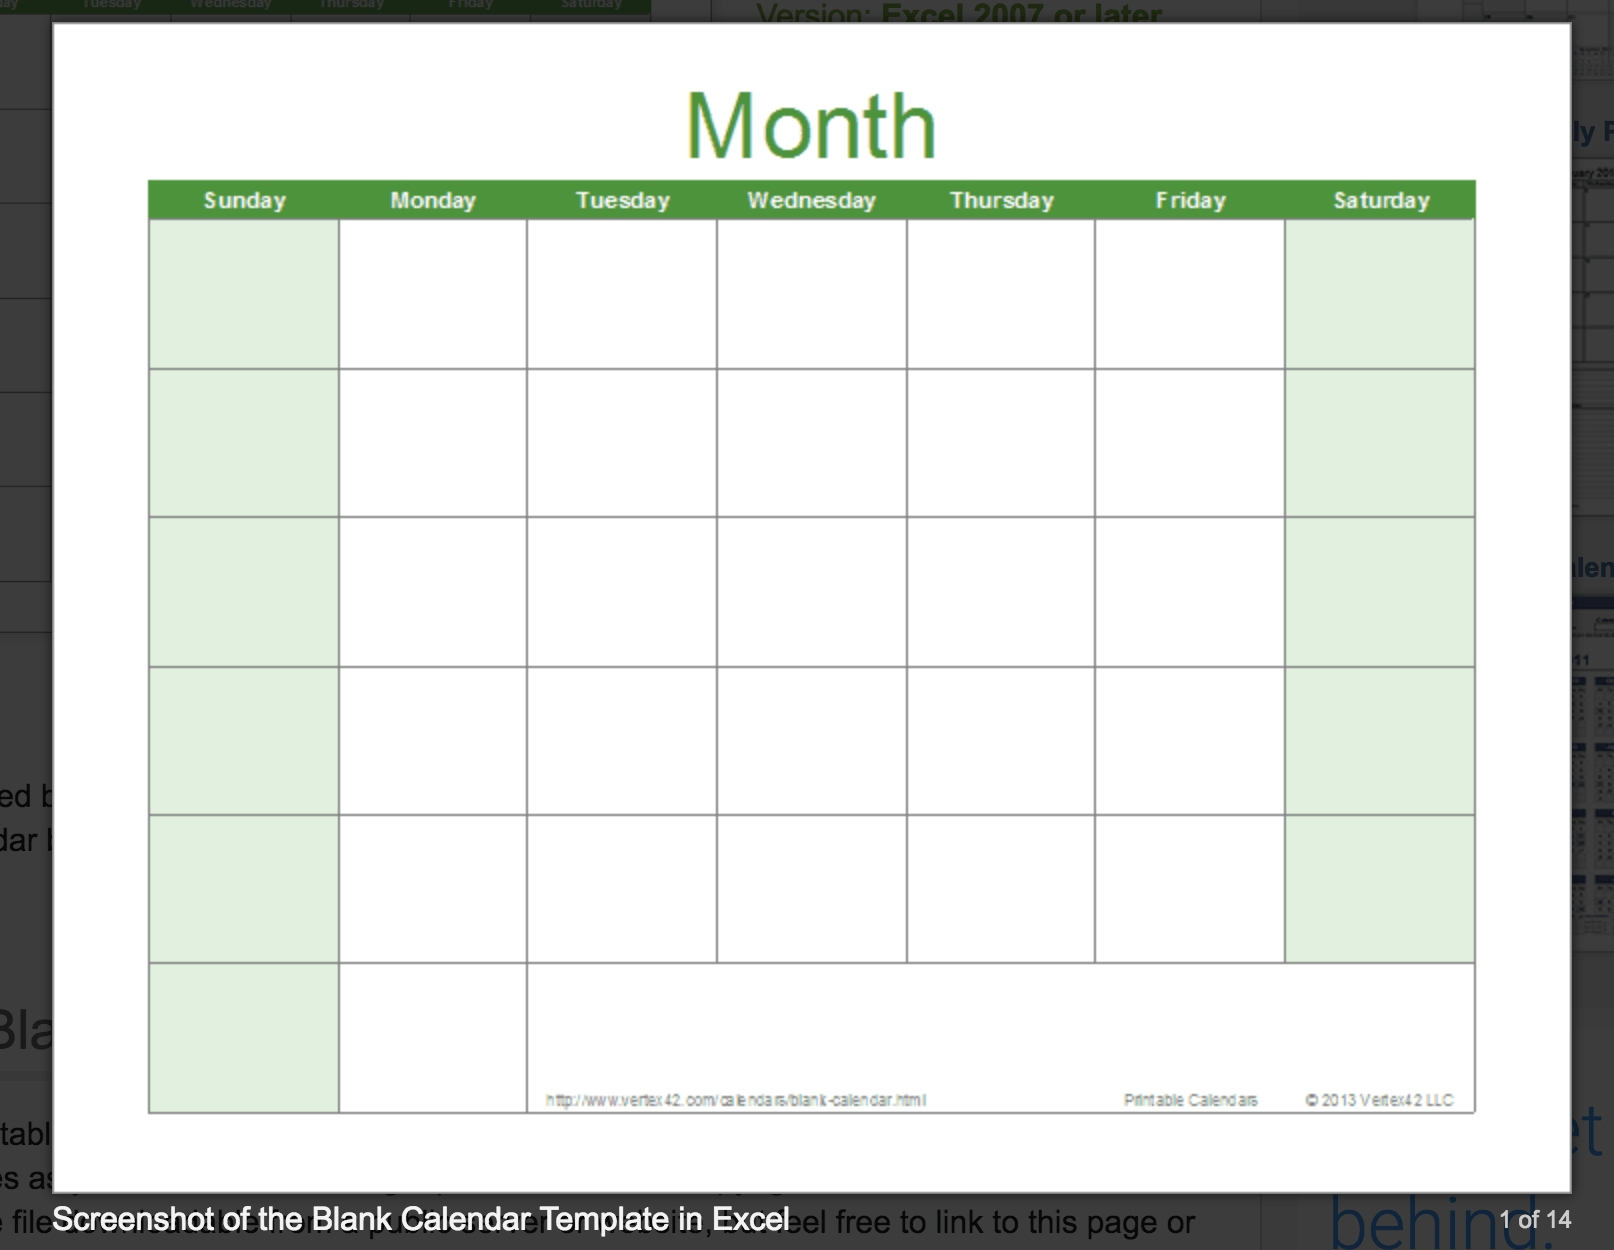 Free Printable Calendar You Can Edit | Month Calendar Printable Calendar You Can Edit